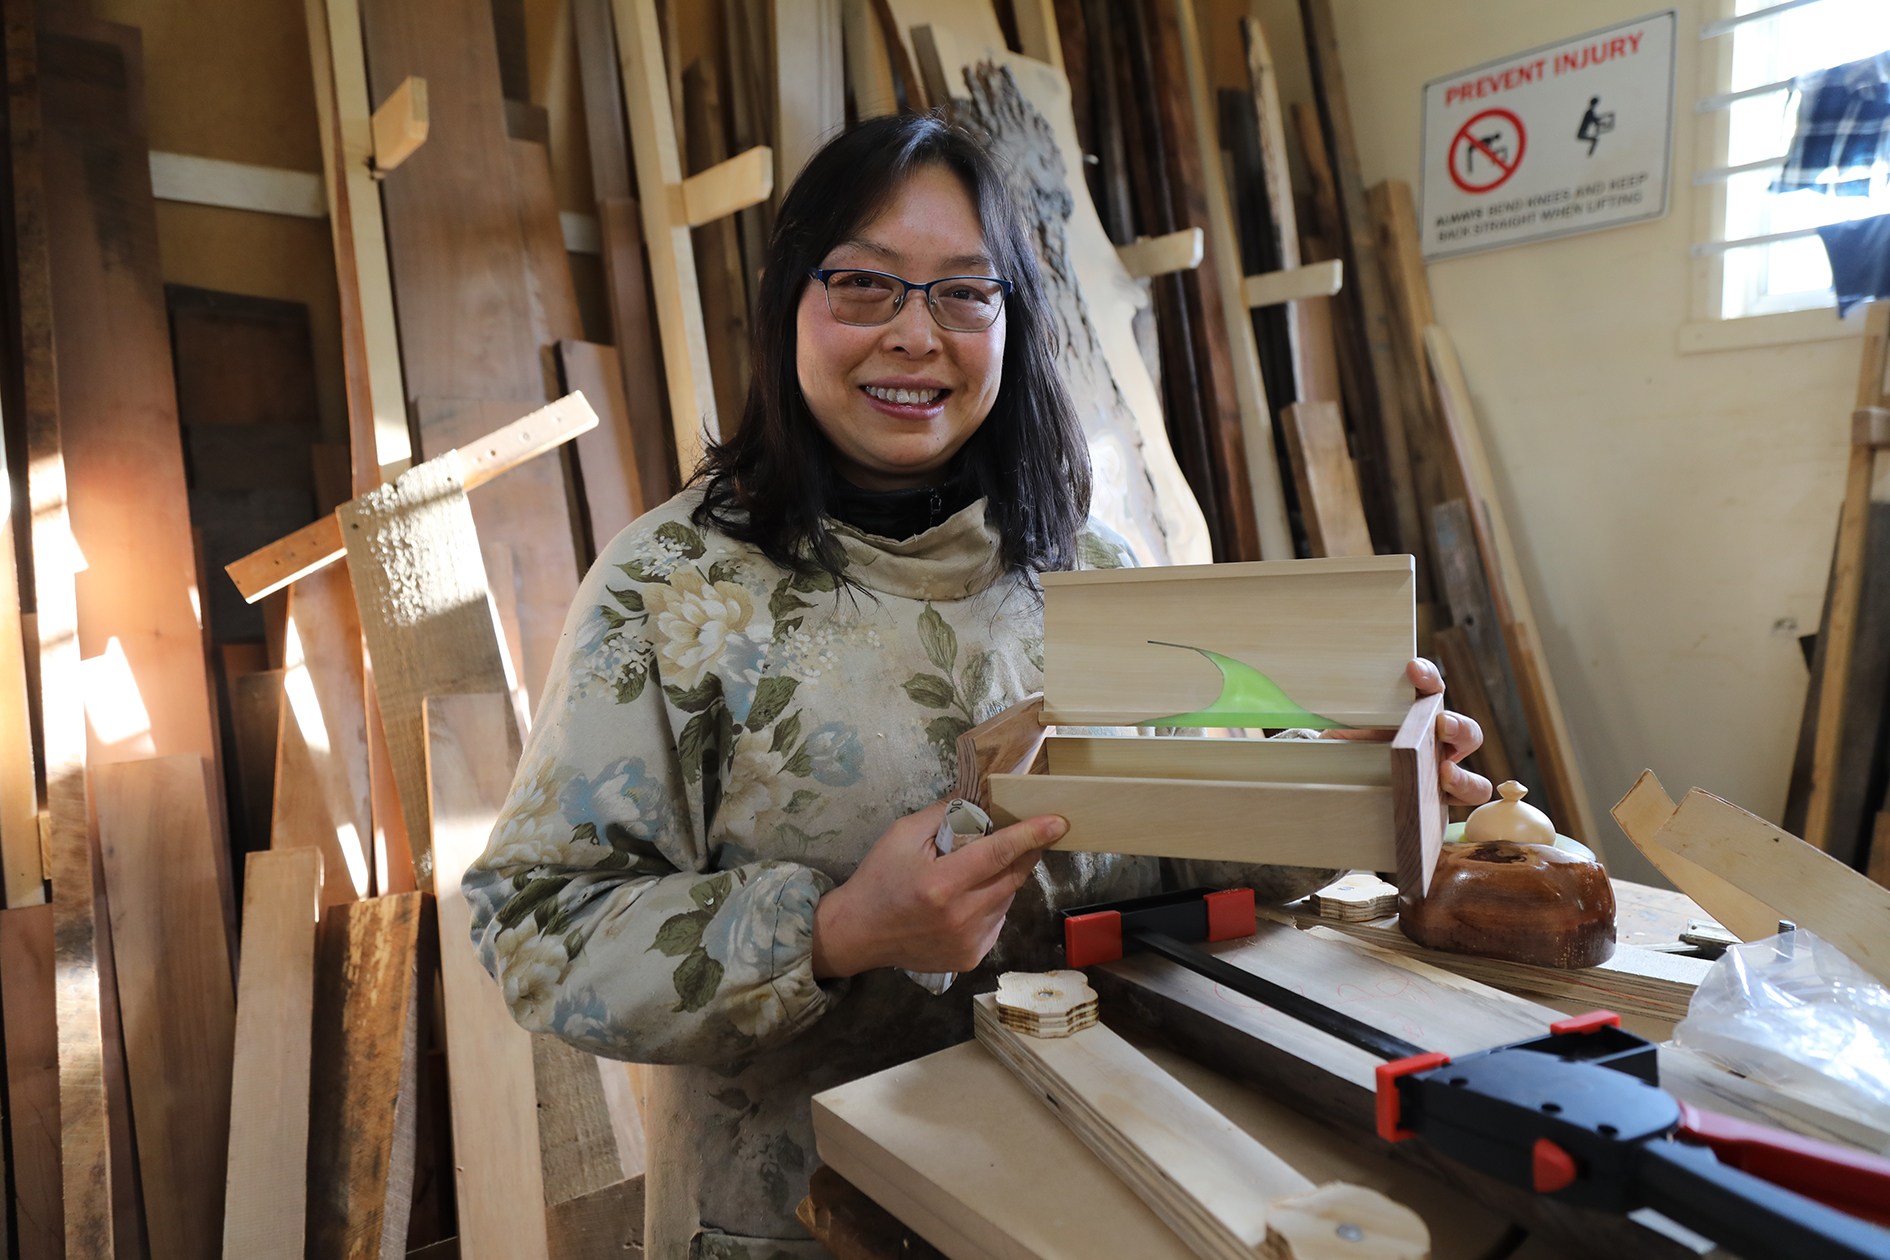 Hong Ma, at the Deloraine Community shed, with one of her newest creations, a small wooden box inset with translucent green resin.  Photo by Mike Moores